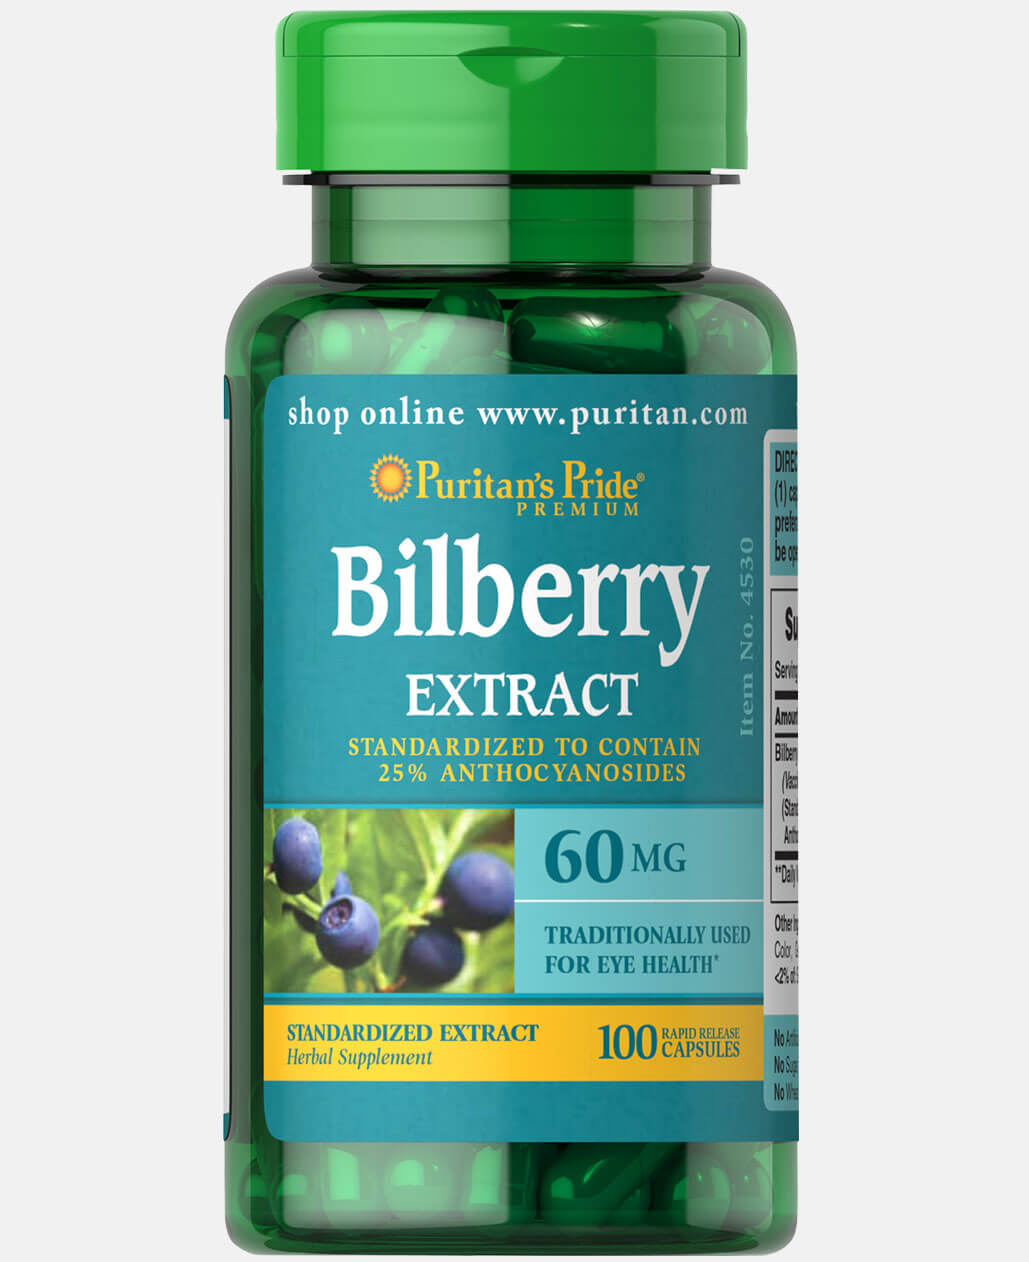 Bilberry Fruit Standardized Extract 60 mg